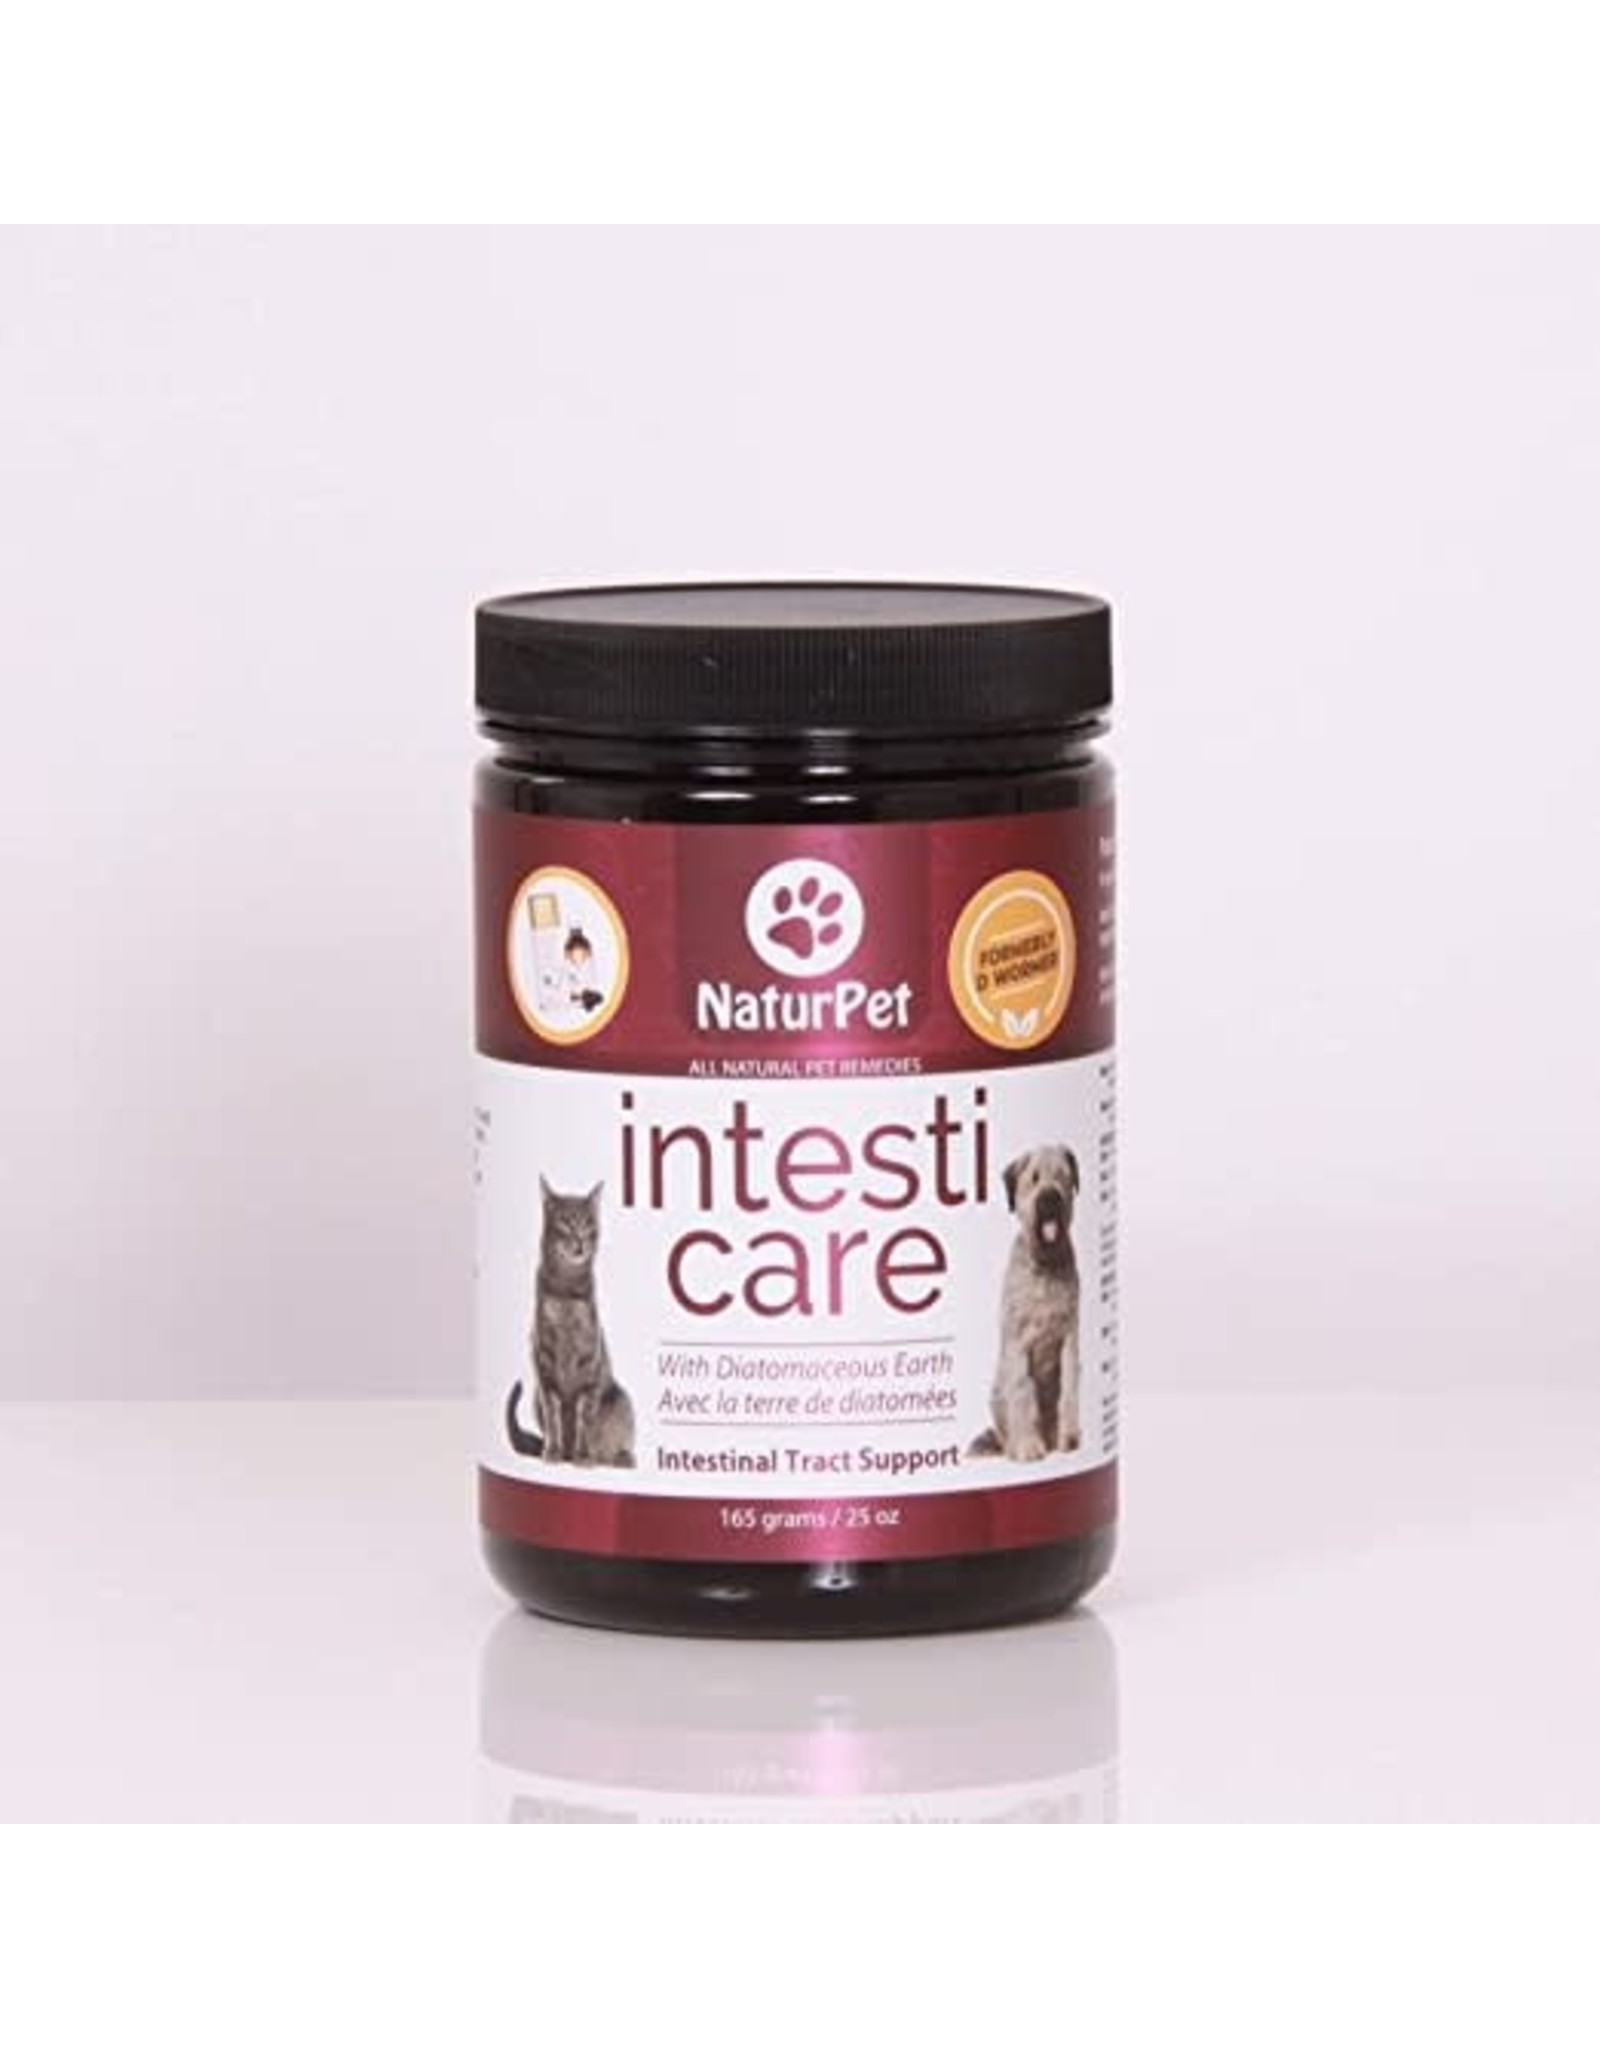 Naturepet Intesti Care